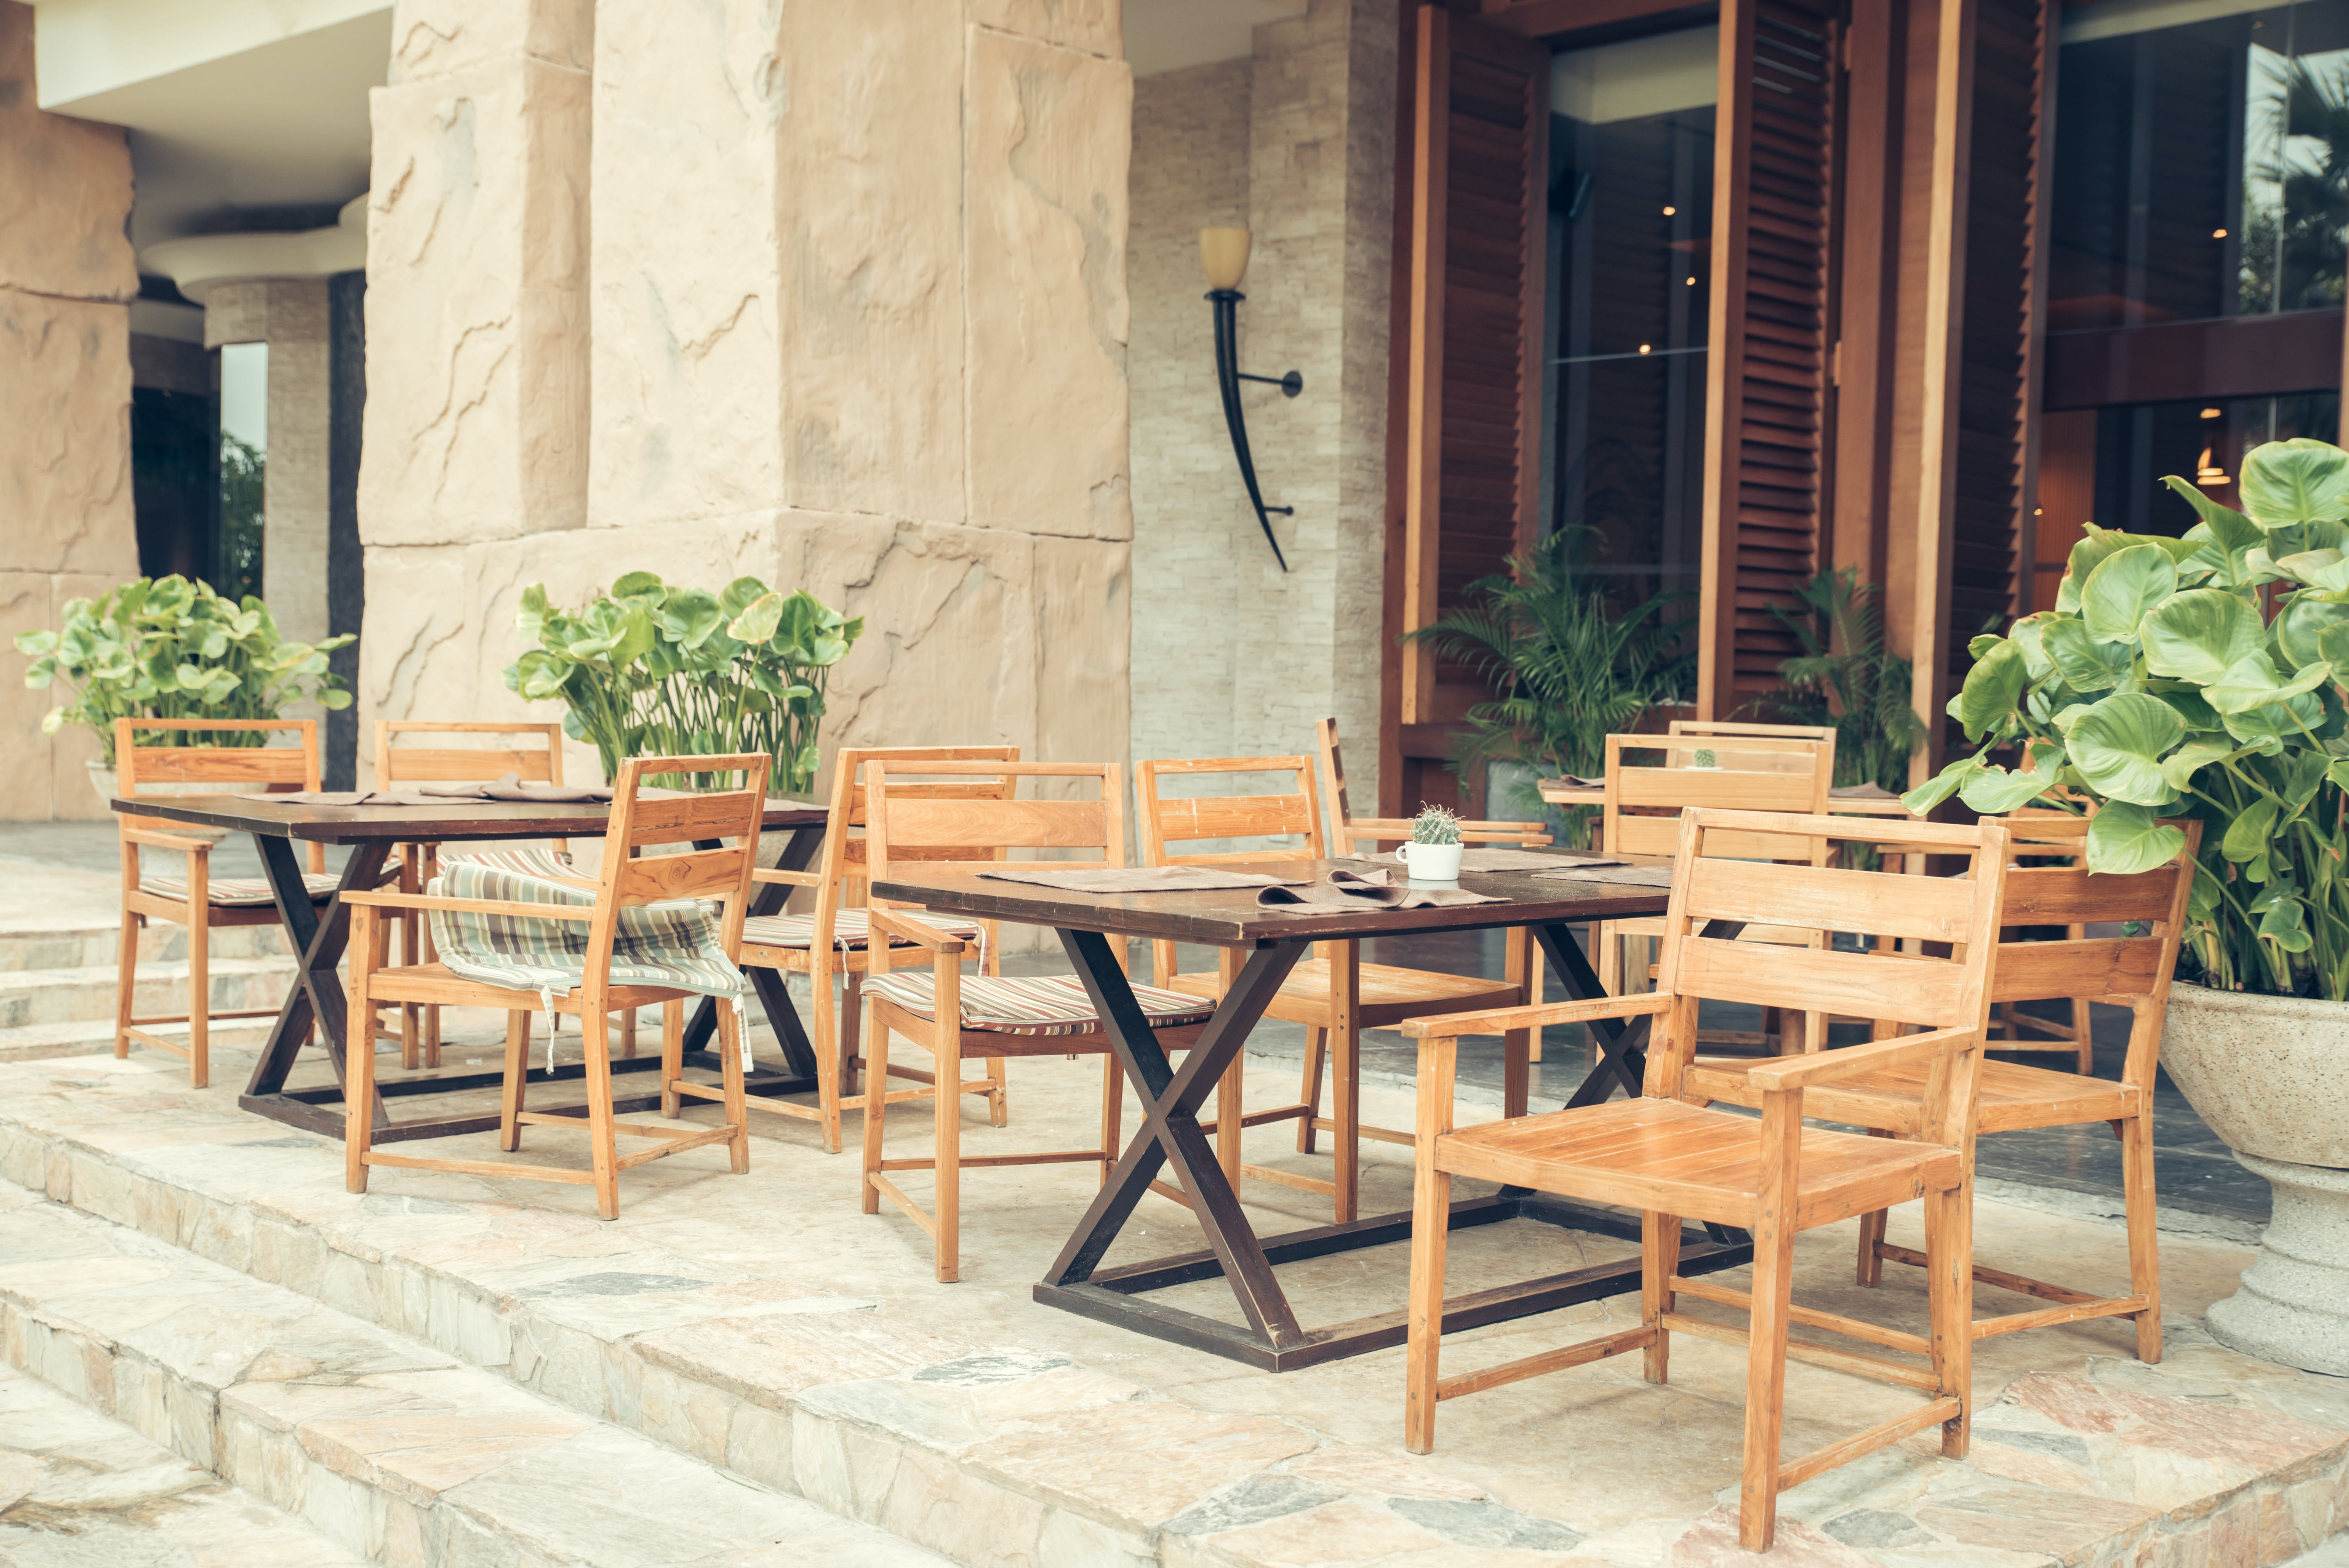 Two Sets of Brown Wooden Table and Chairs Outside Store